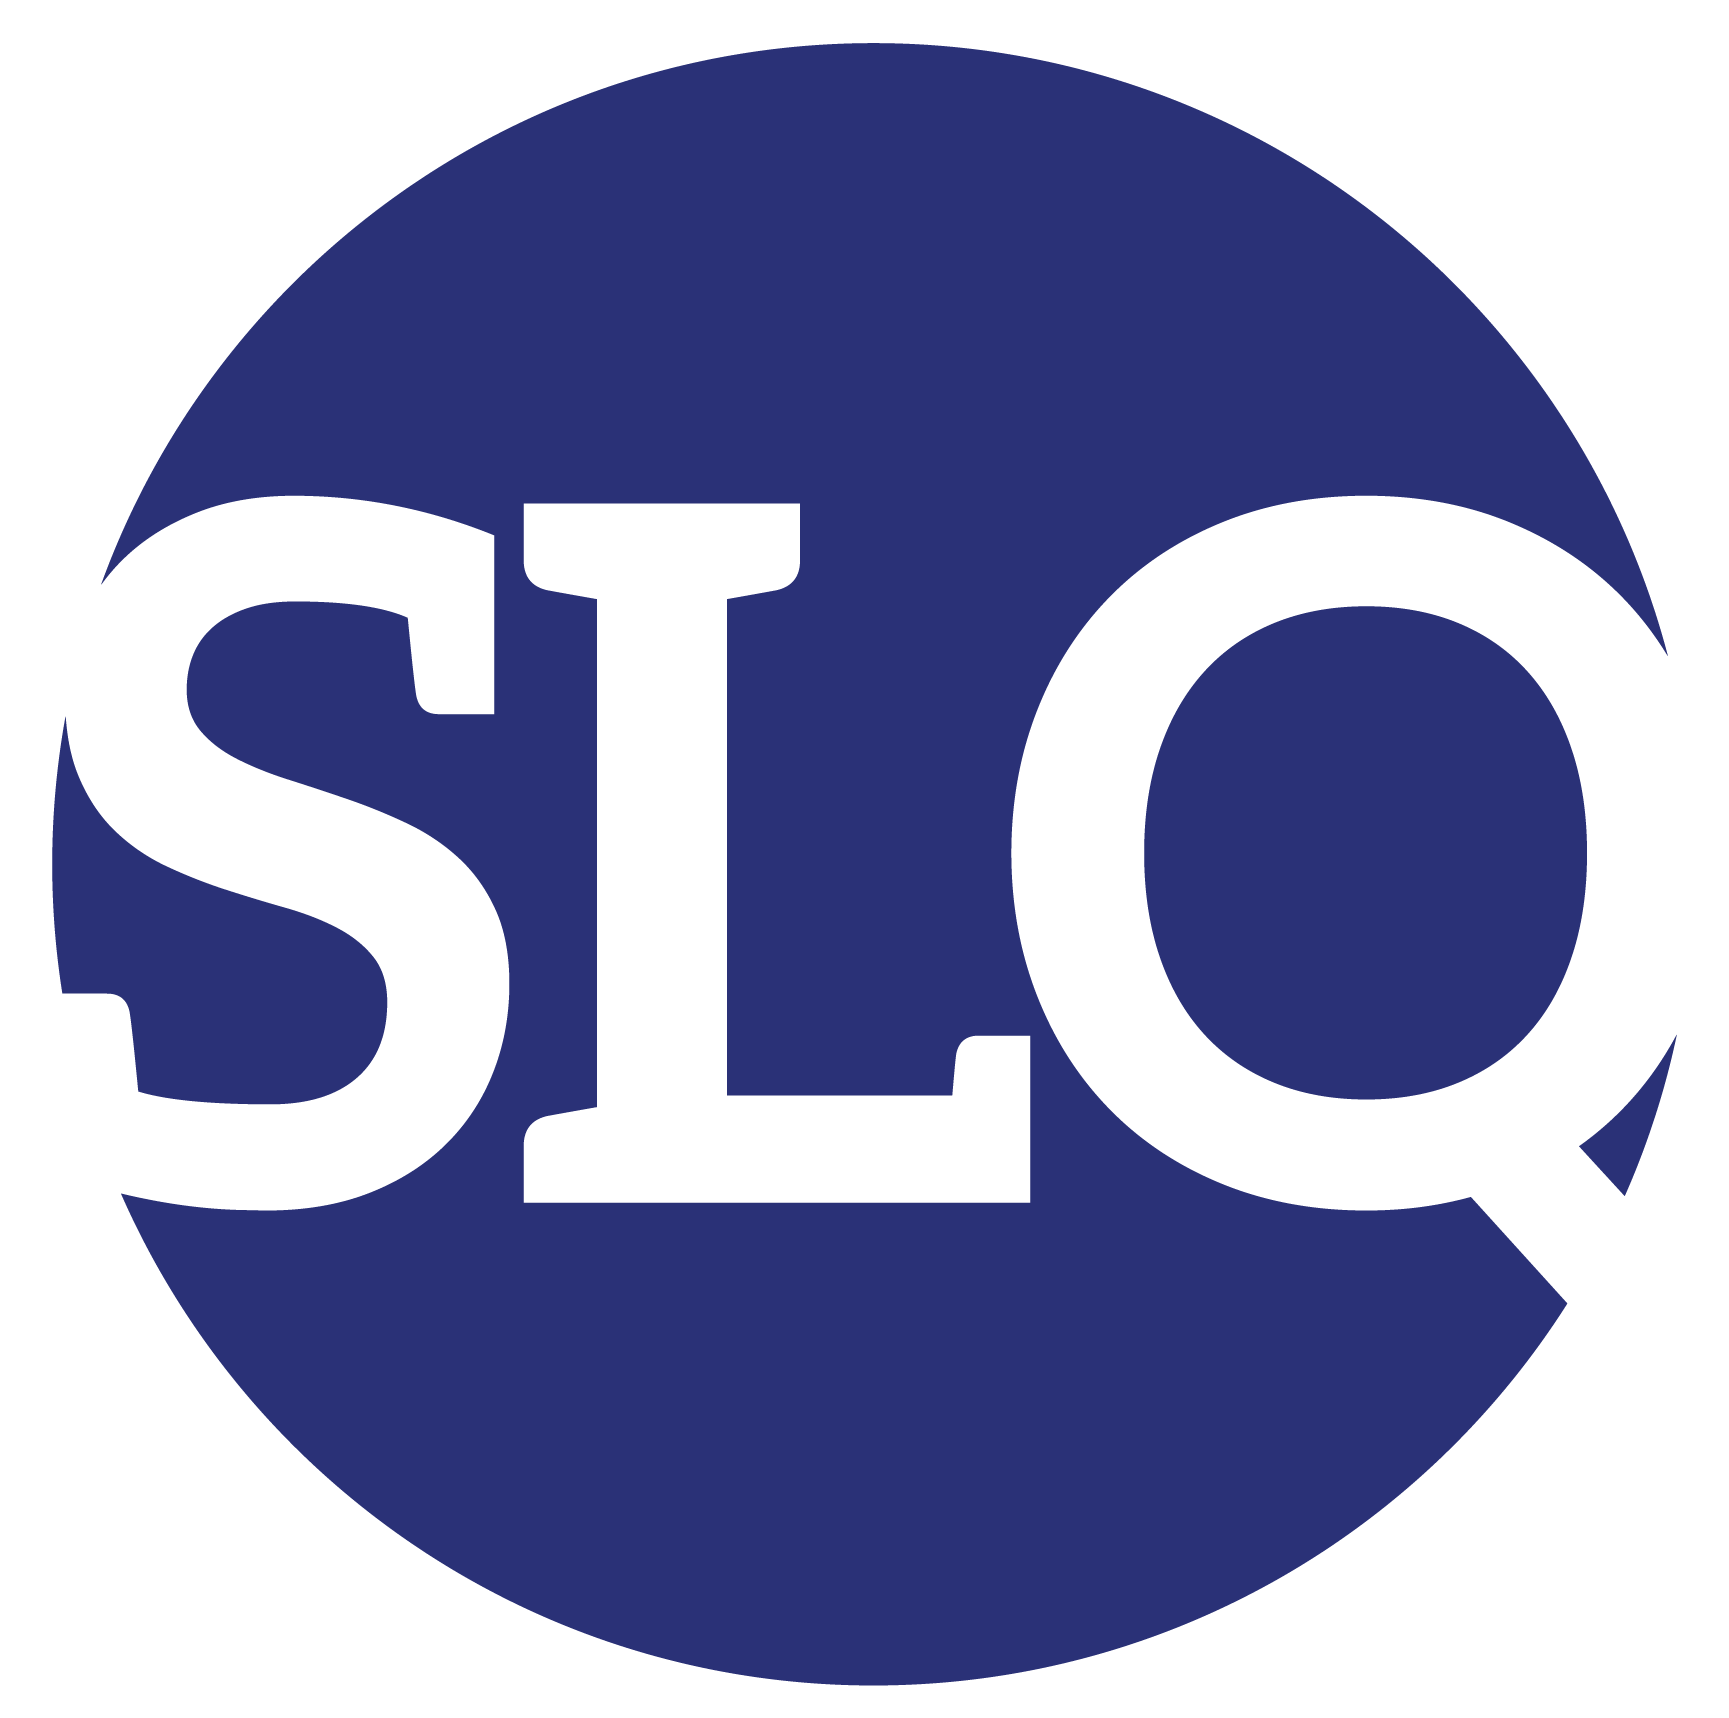 SLQ logo v2.1 FINAL.png